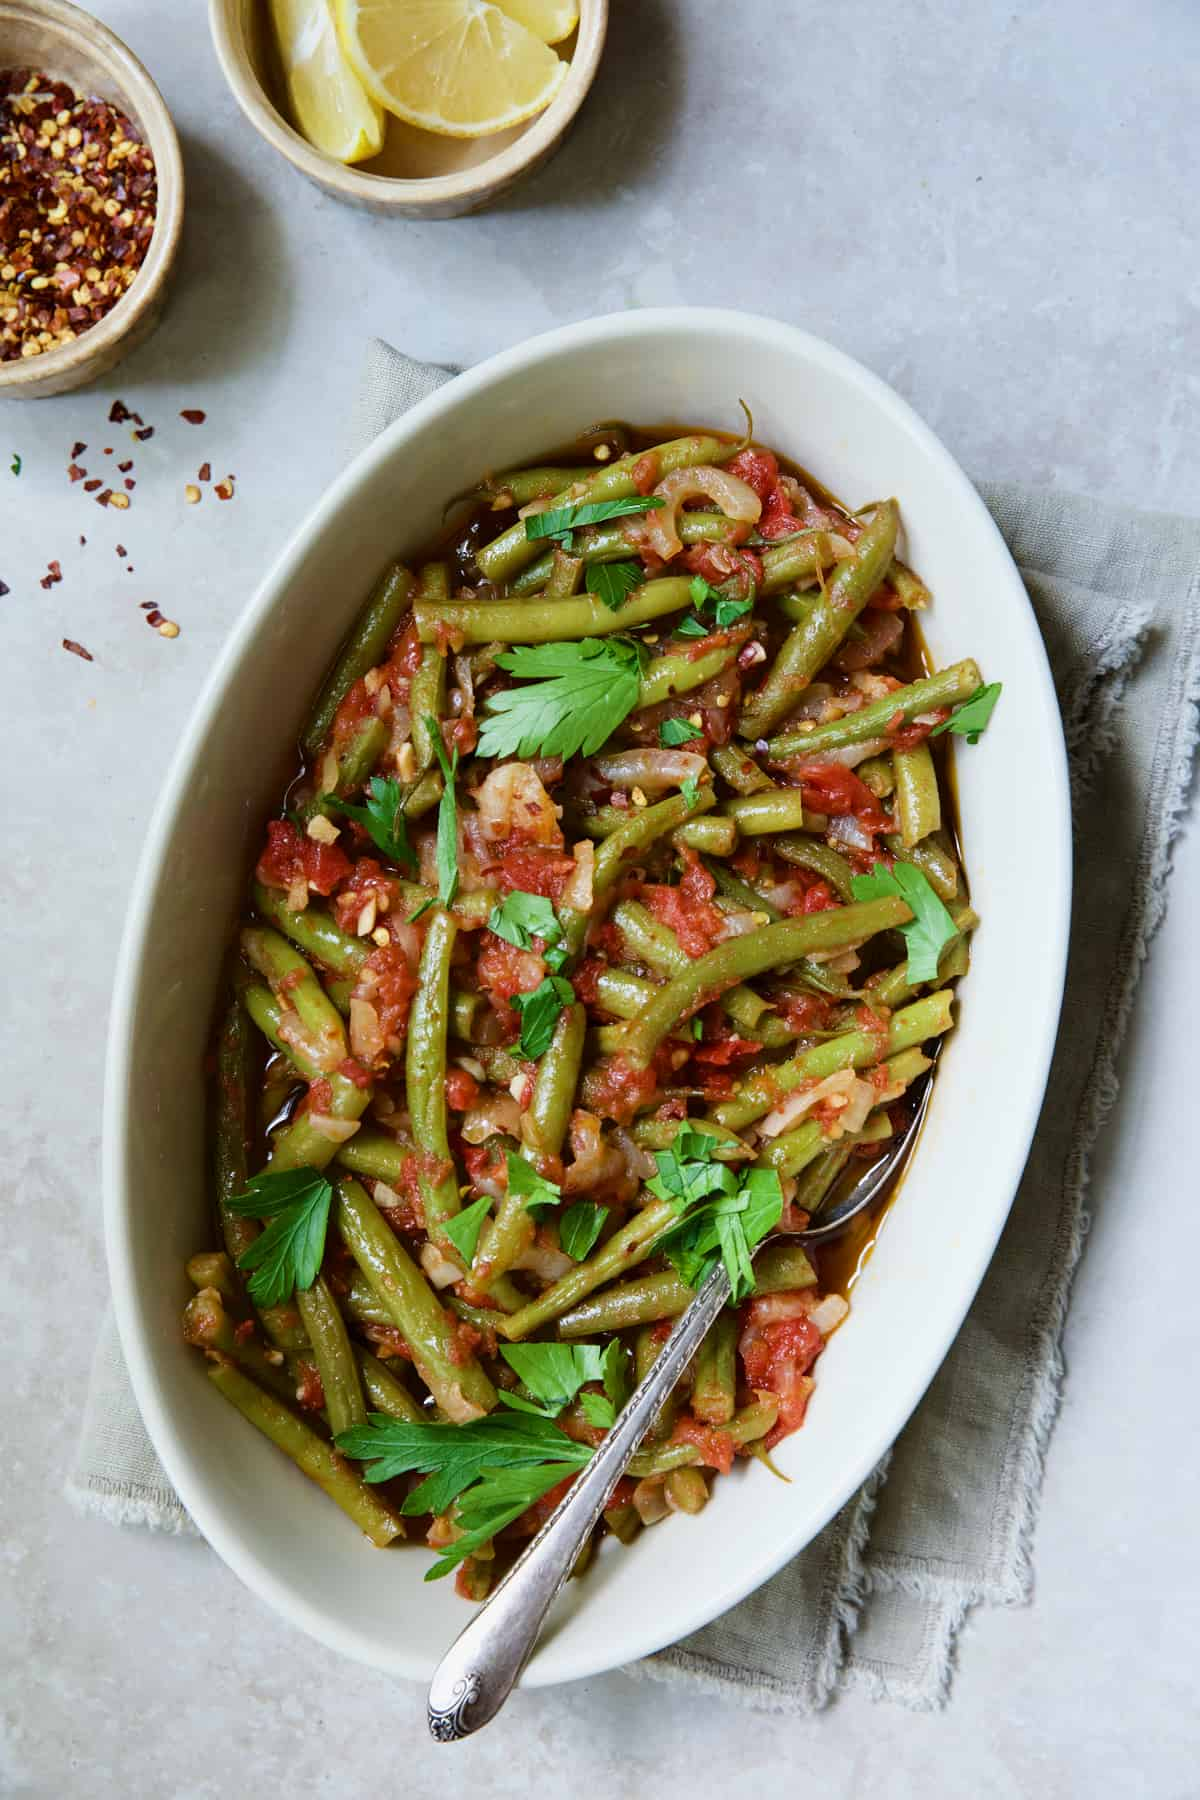 Mediterranean Braised Green Beans with Tomatoes in oval serving dish garnished with fresh parsley.